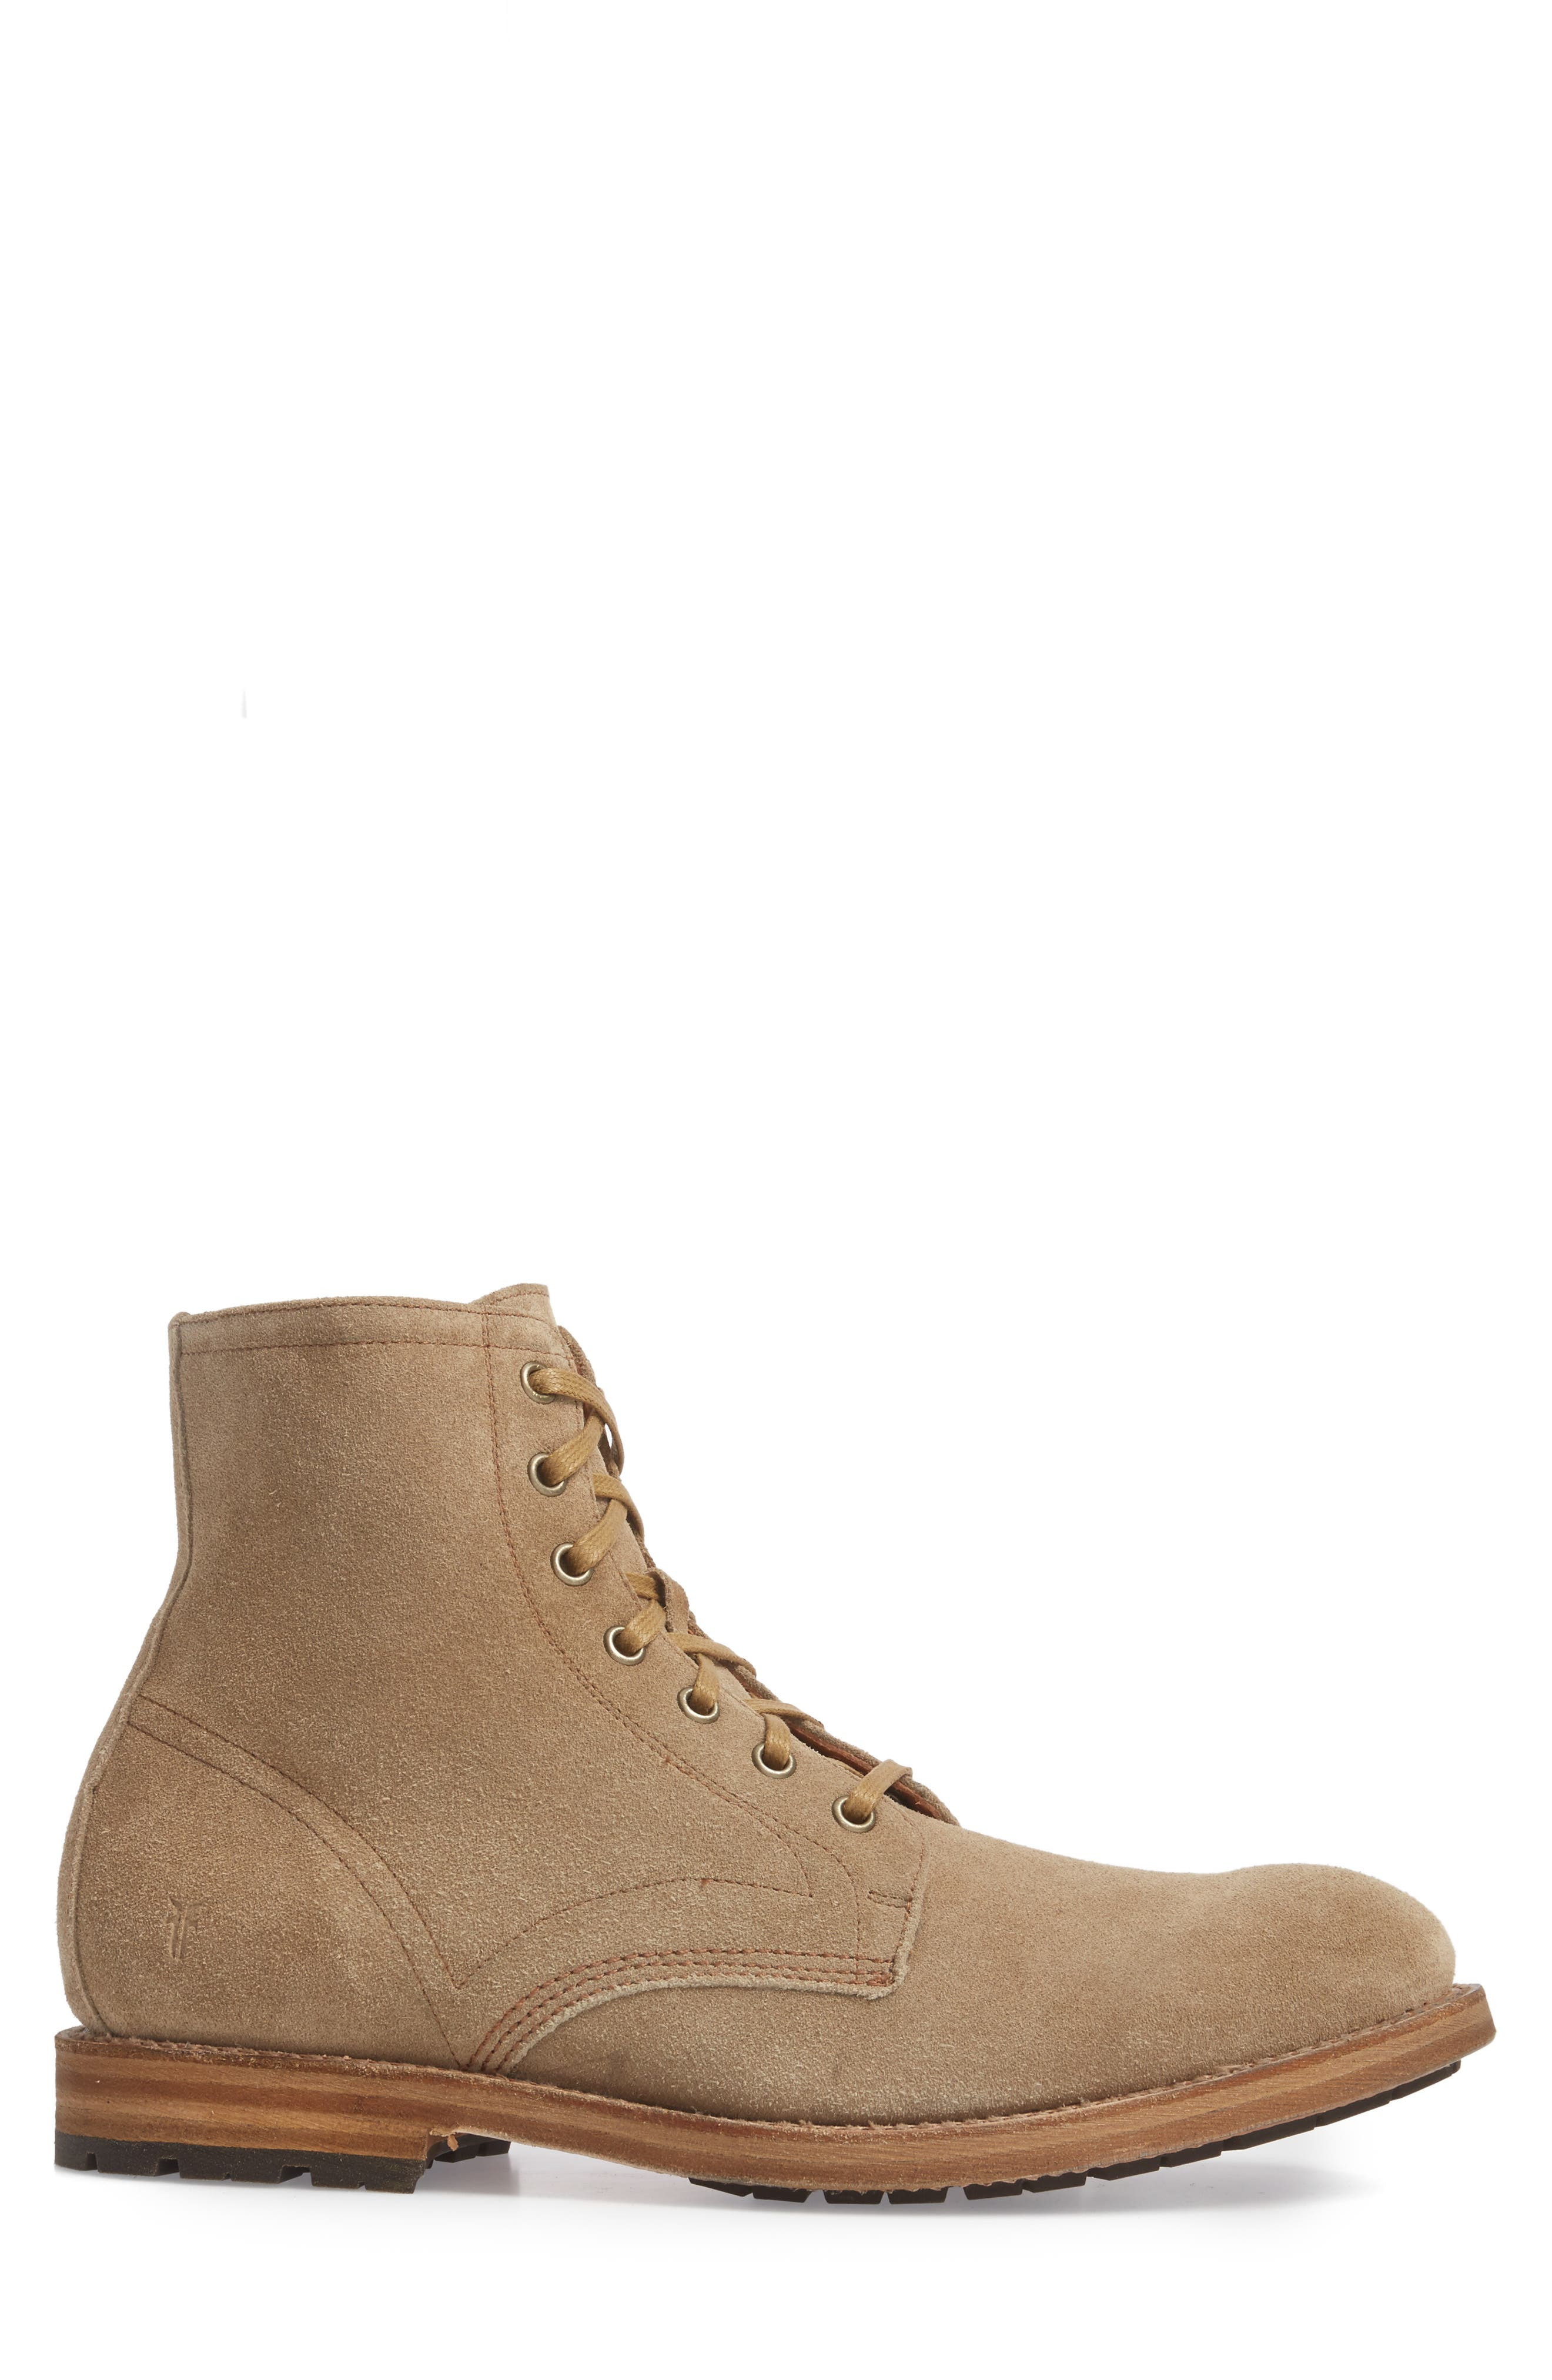 Fry Bowery Side Zip Combat Boot,                             Alternate thumbnail 3, color,                             ASH SUEDE